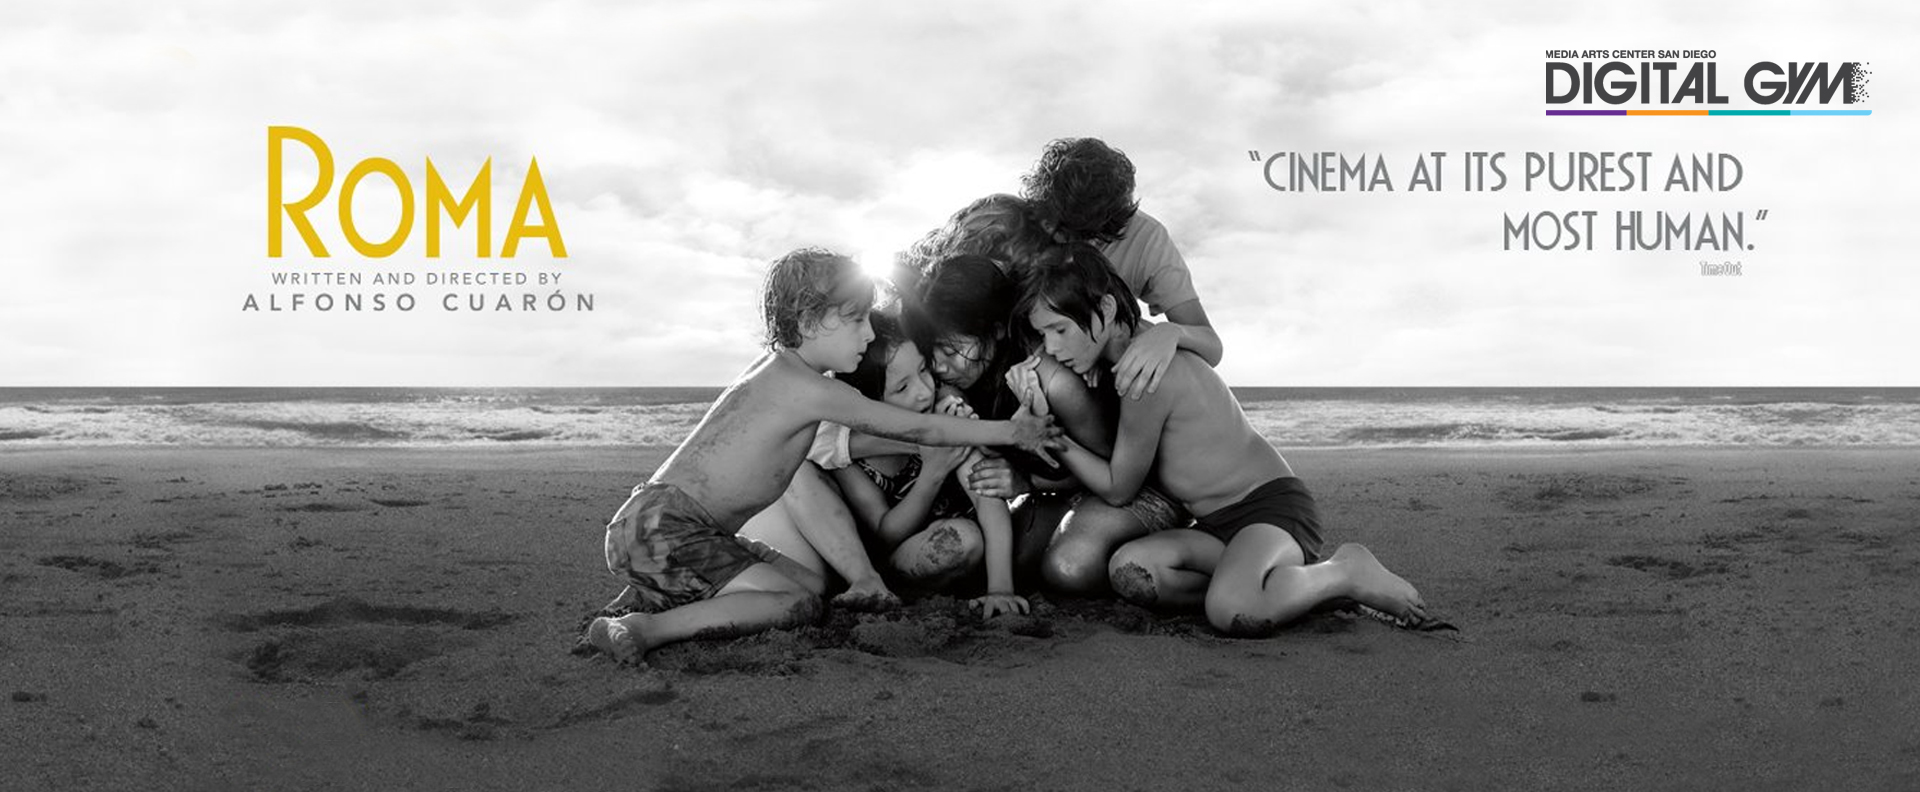 Alfonso Cuarón's masterpiece ROMA (December 14 – January 24)